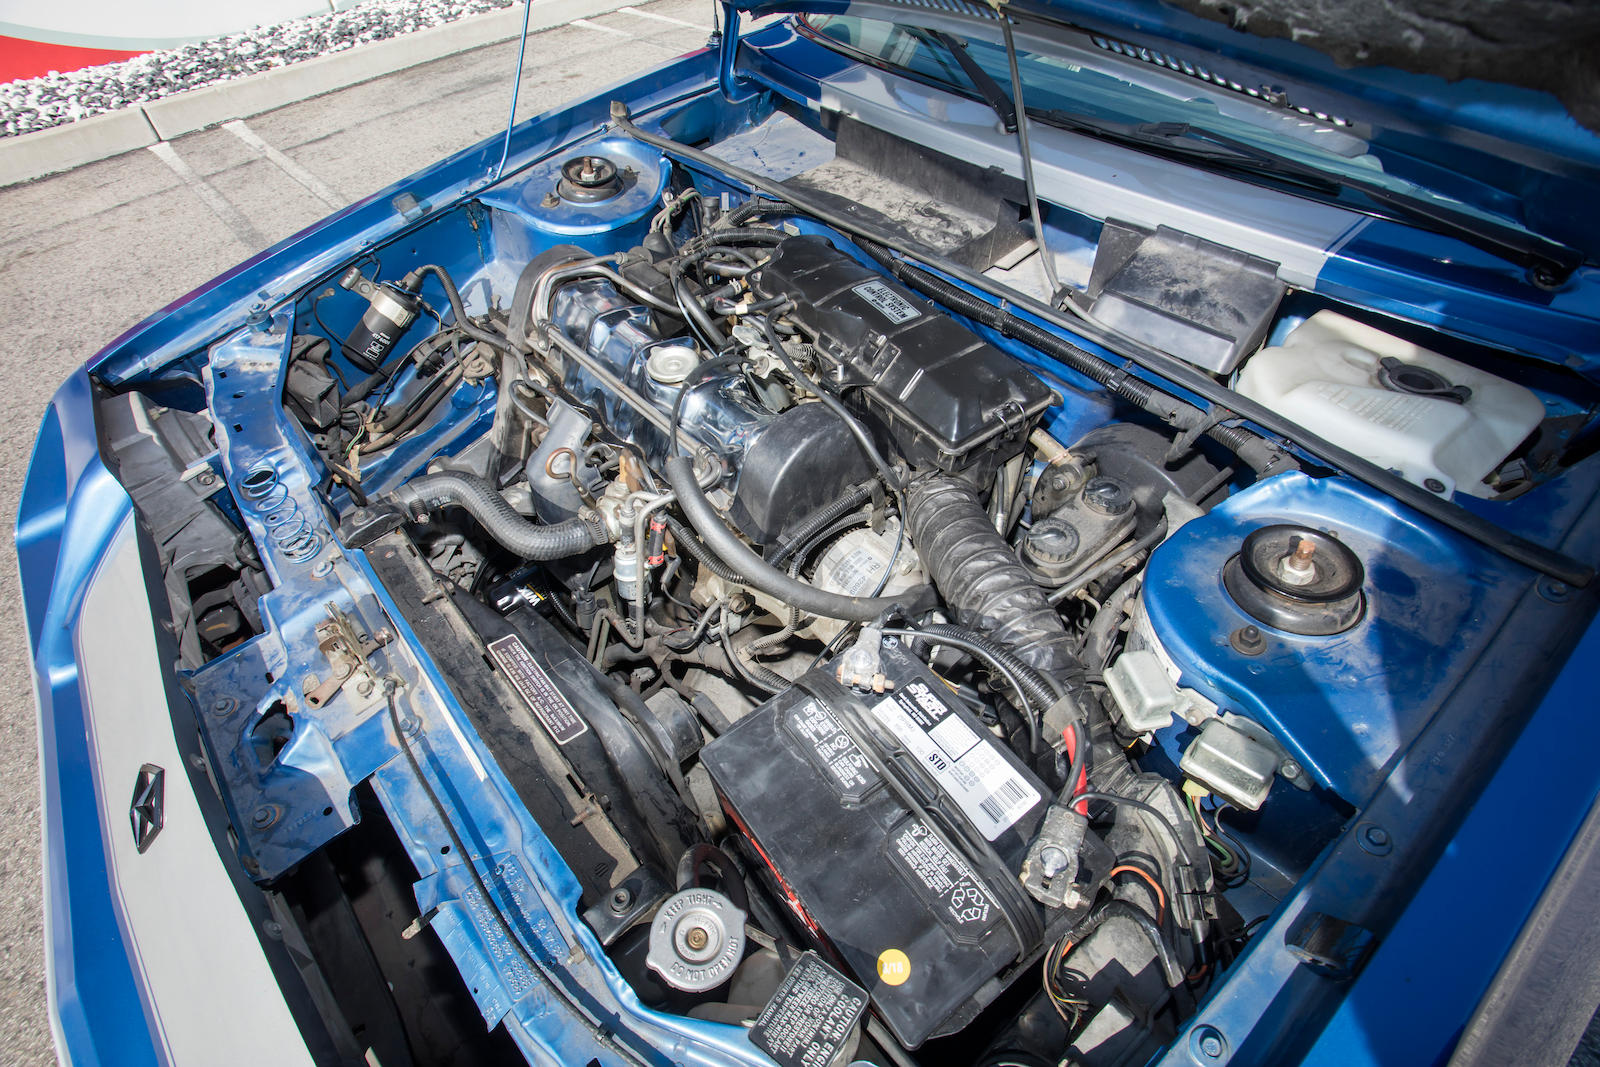 1983 Dodge Shelby Charger engine